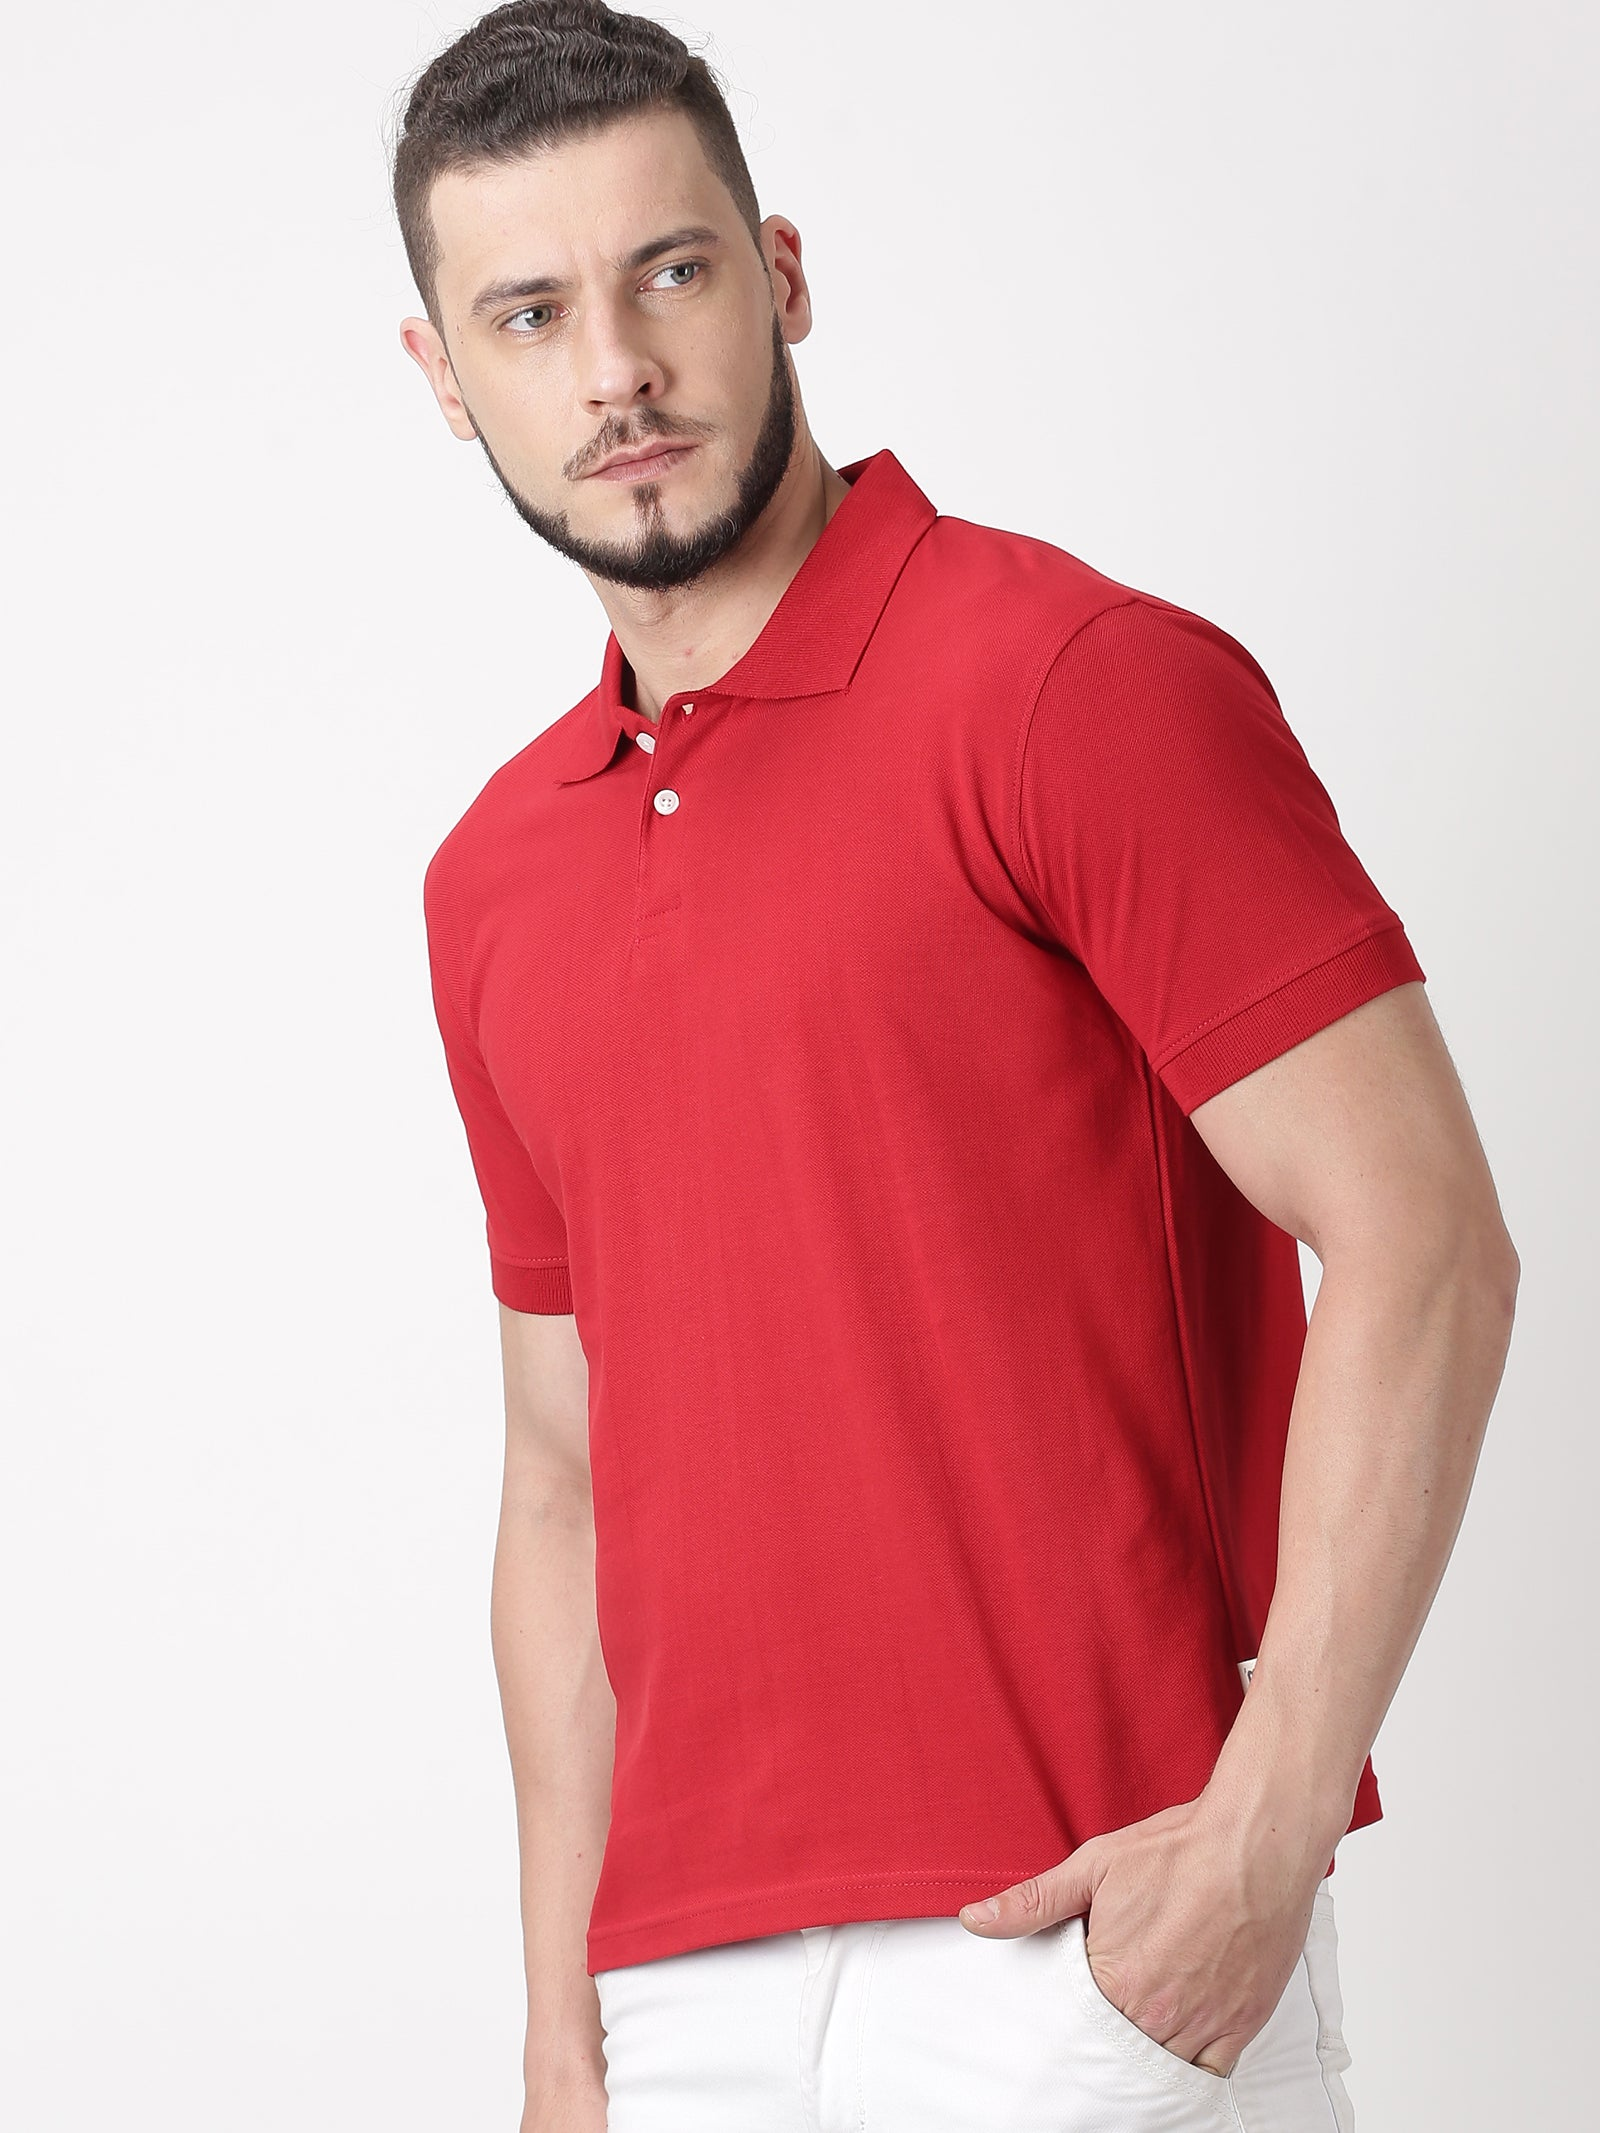 Organic cotton polo t-shirt - Red